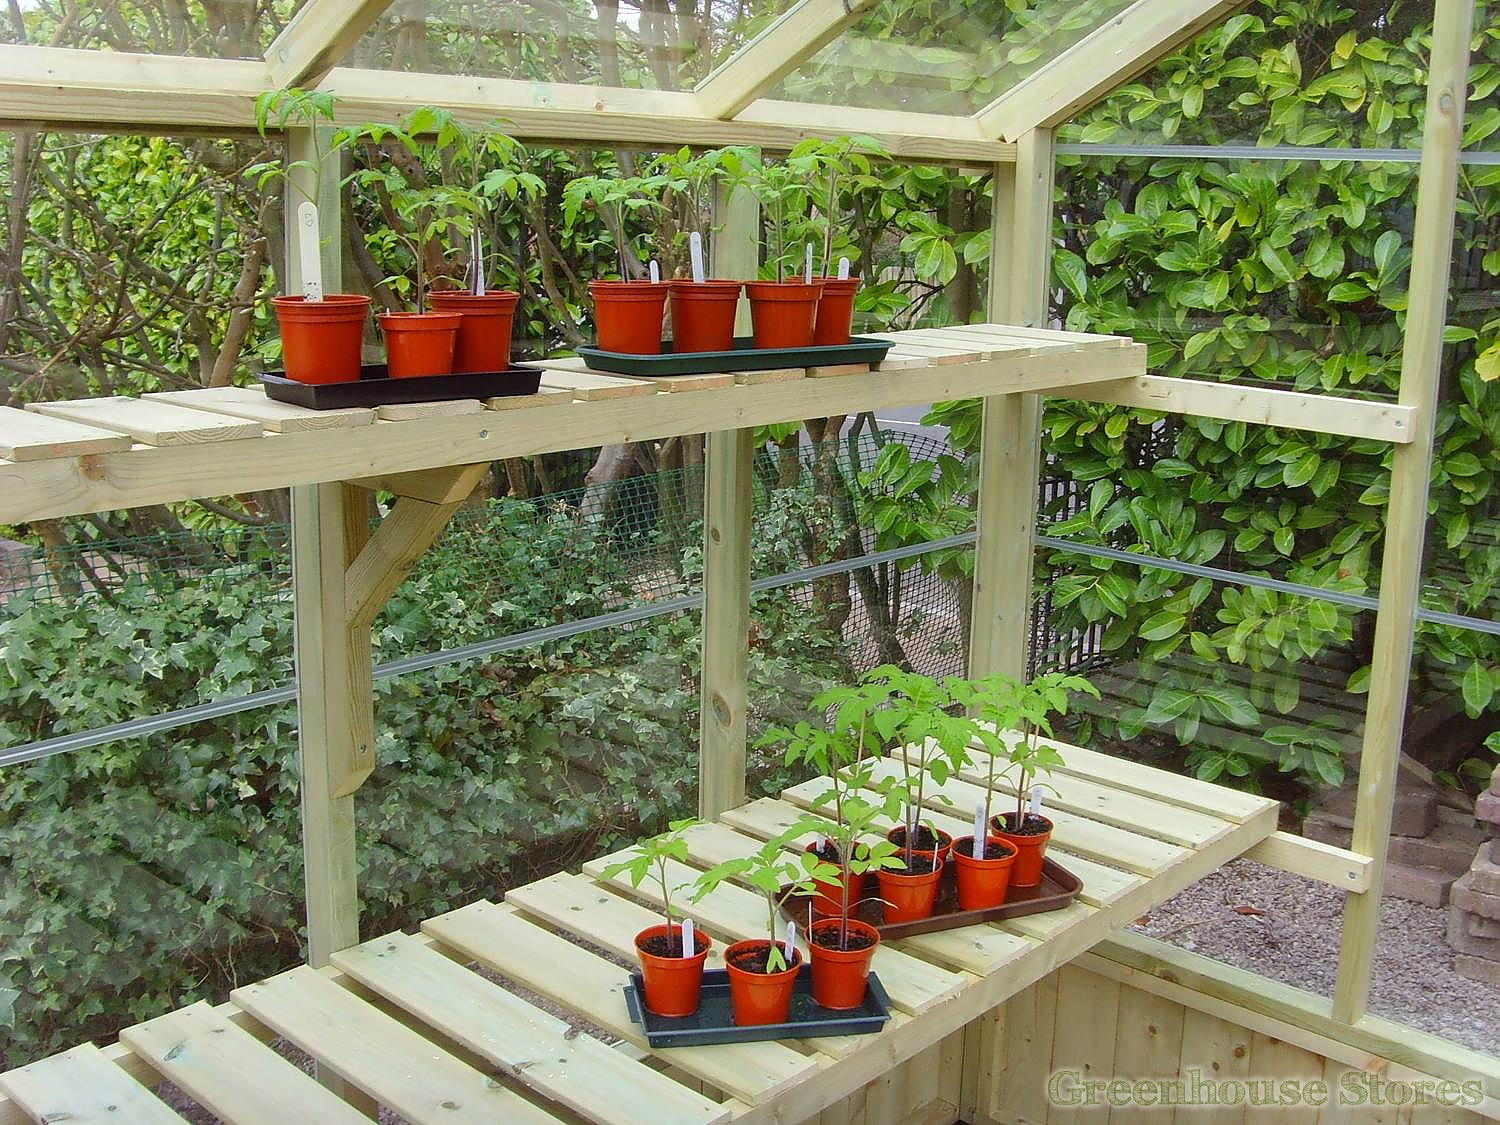 Swallow kingfisher 6x4 wooden greenhouse greenhouse stores - Wooden staging for greenhouse ...